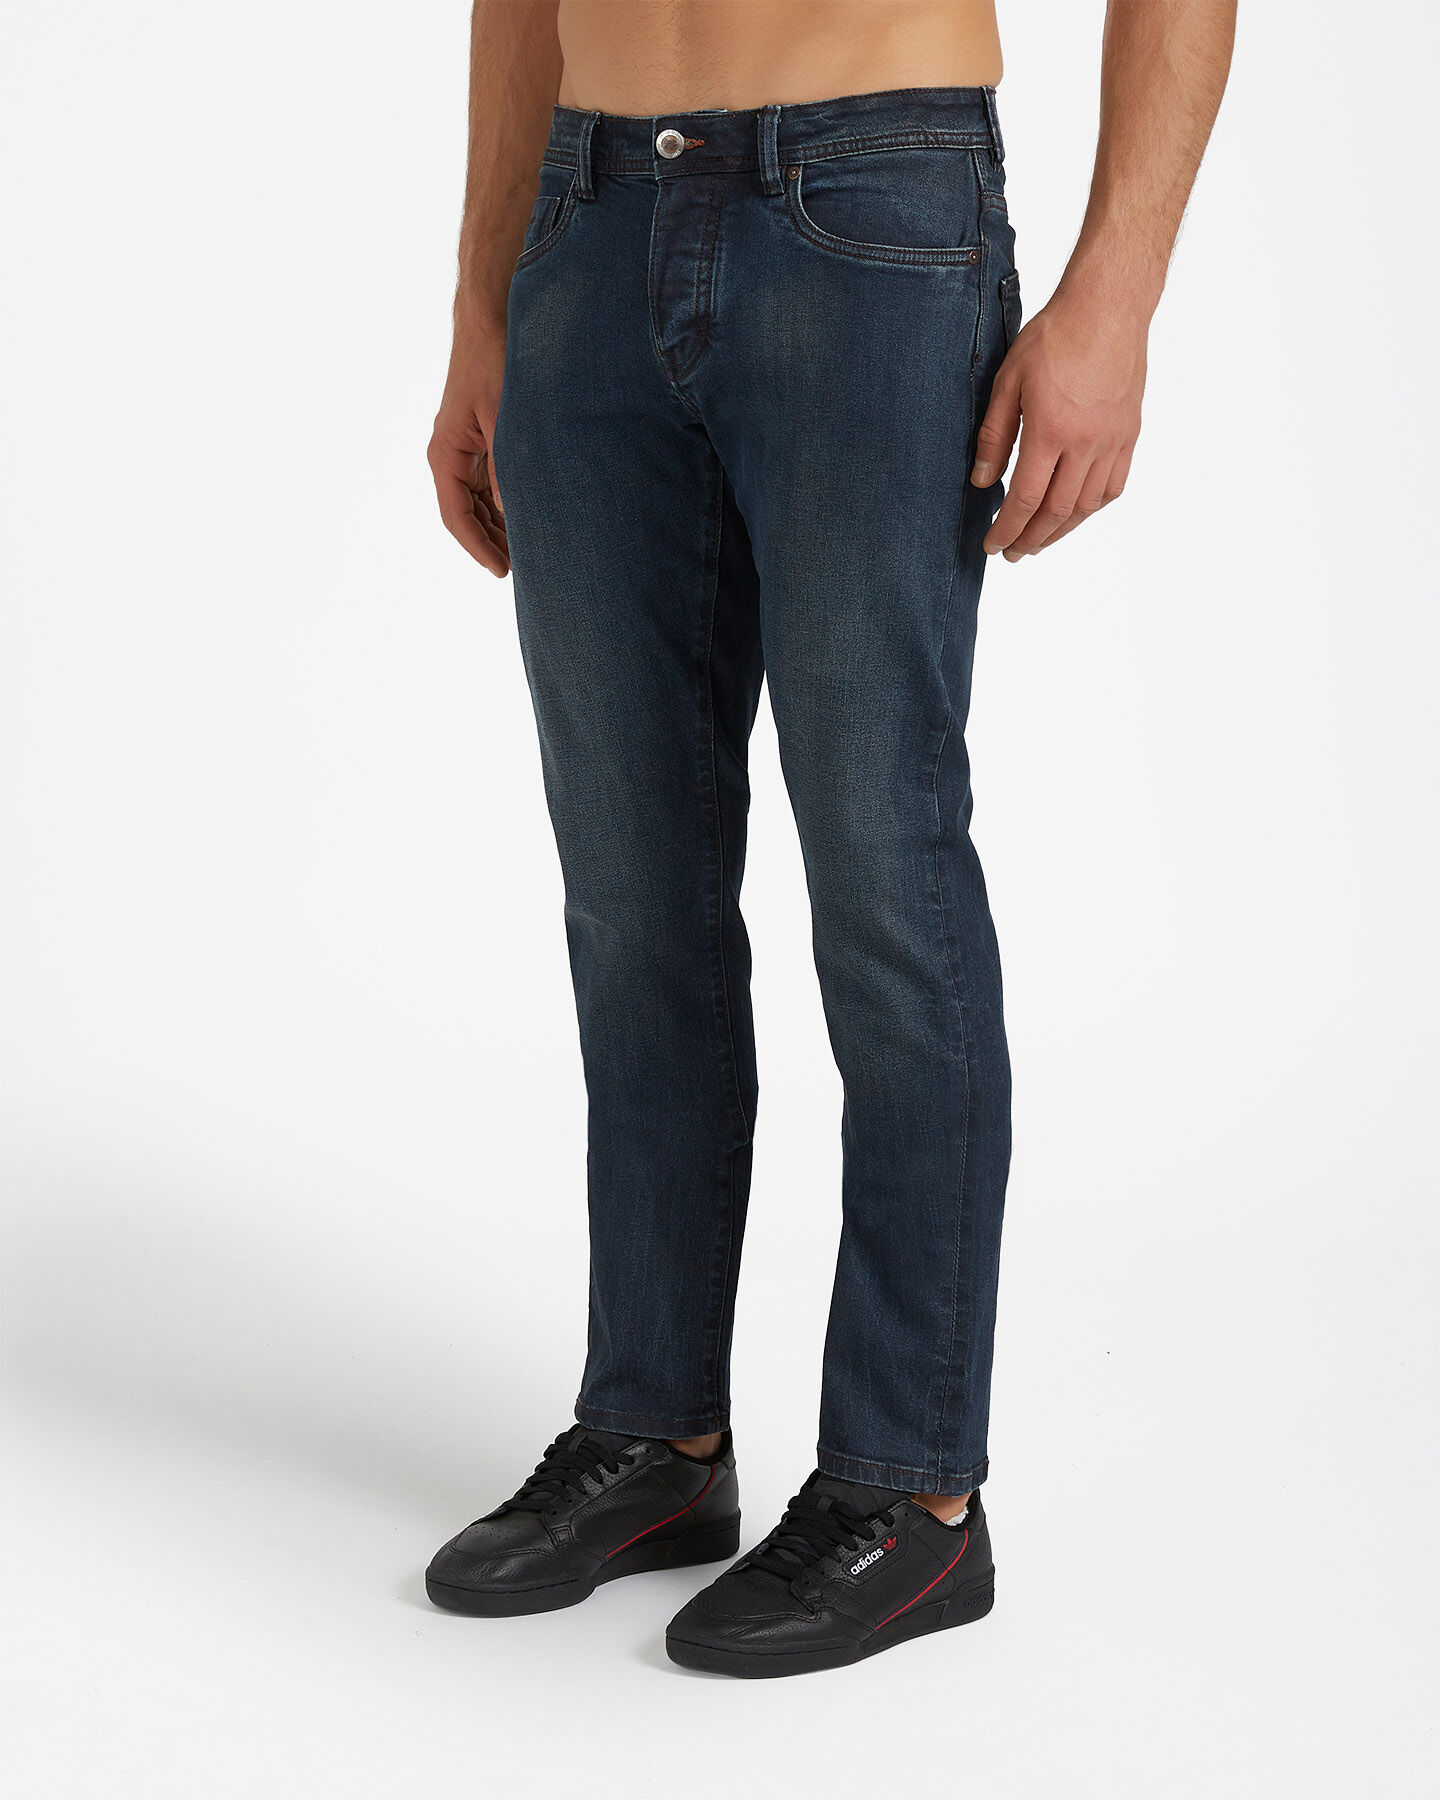 Jeans COTTON BELT 5TS MODERN M S4076653 scatto 2